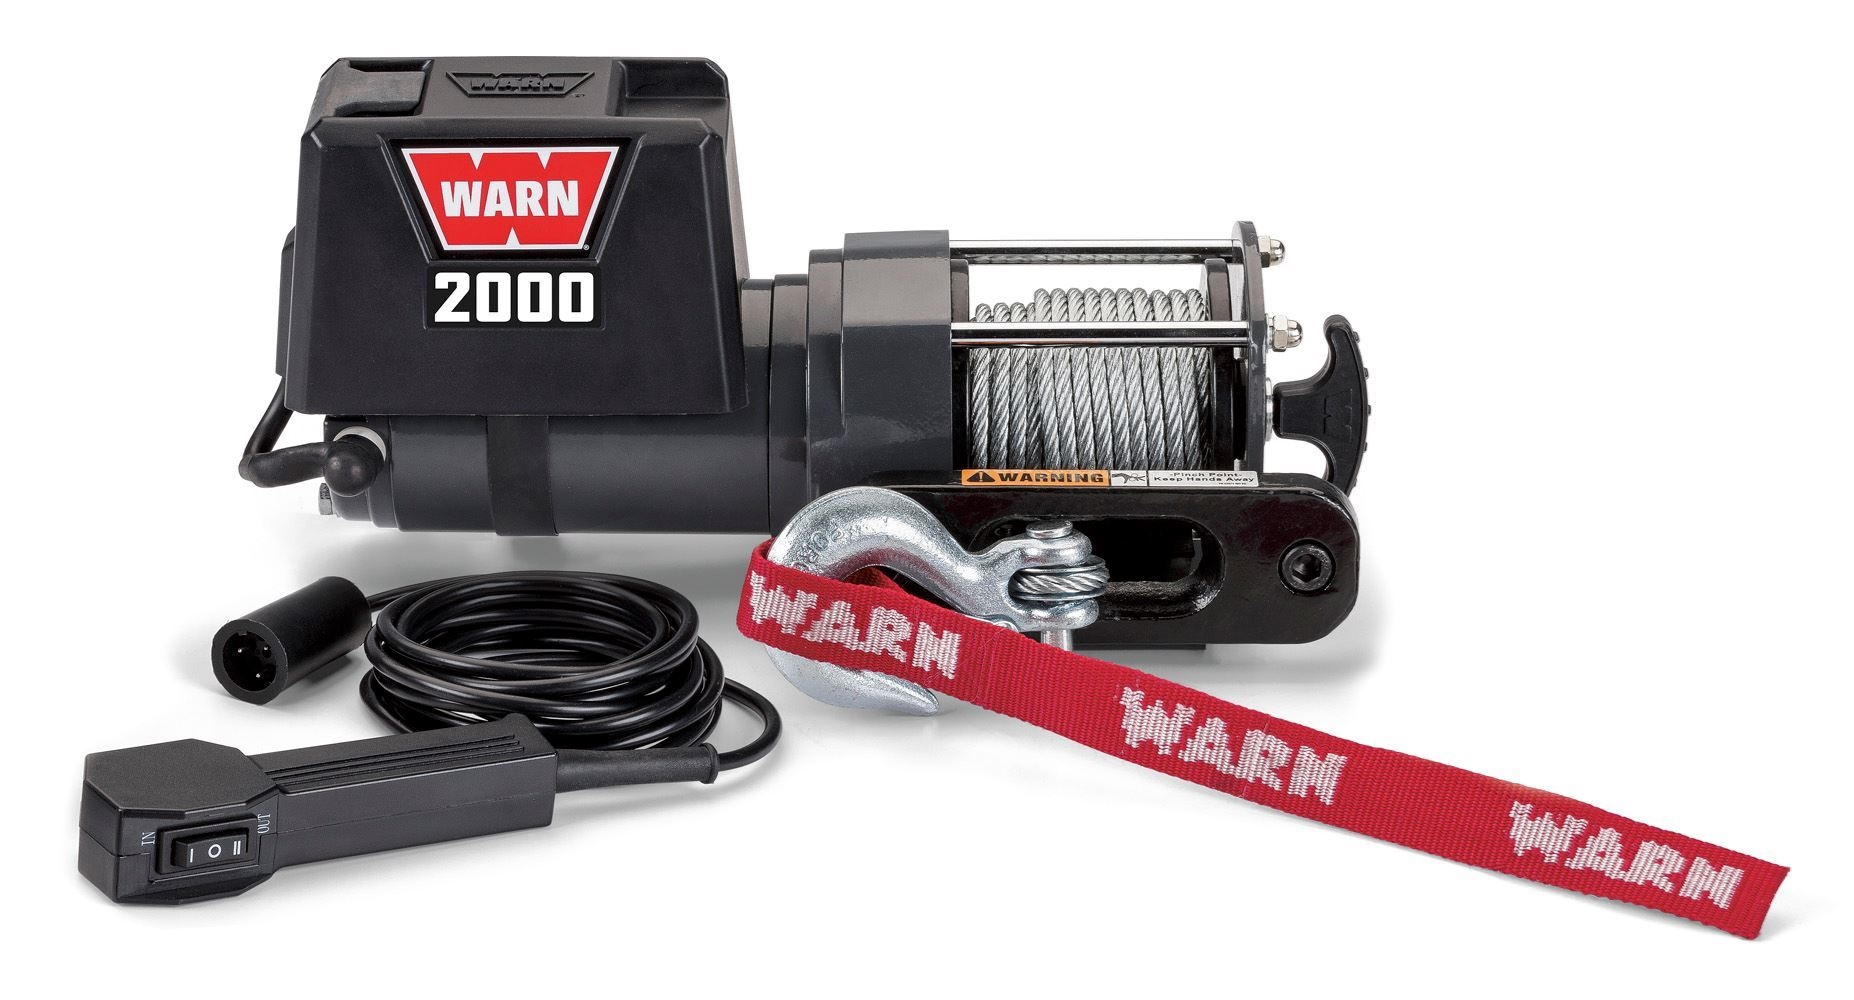 Warn 1700 Winch Wiring Diagram 2000 Dc 12v Electric 92000 Industries Go Prepared Foto De